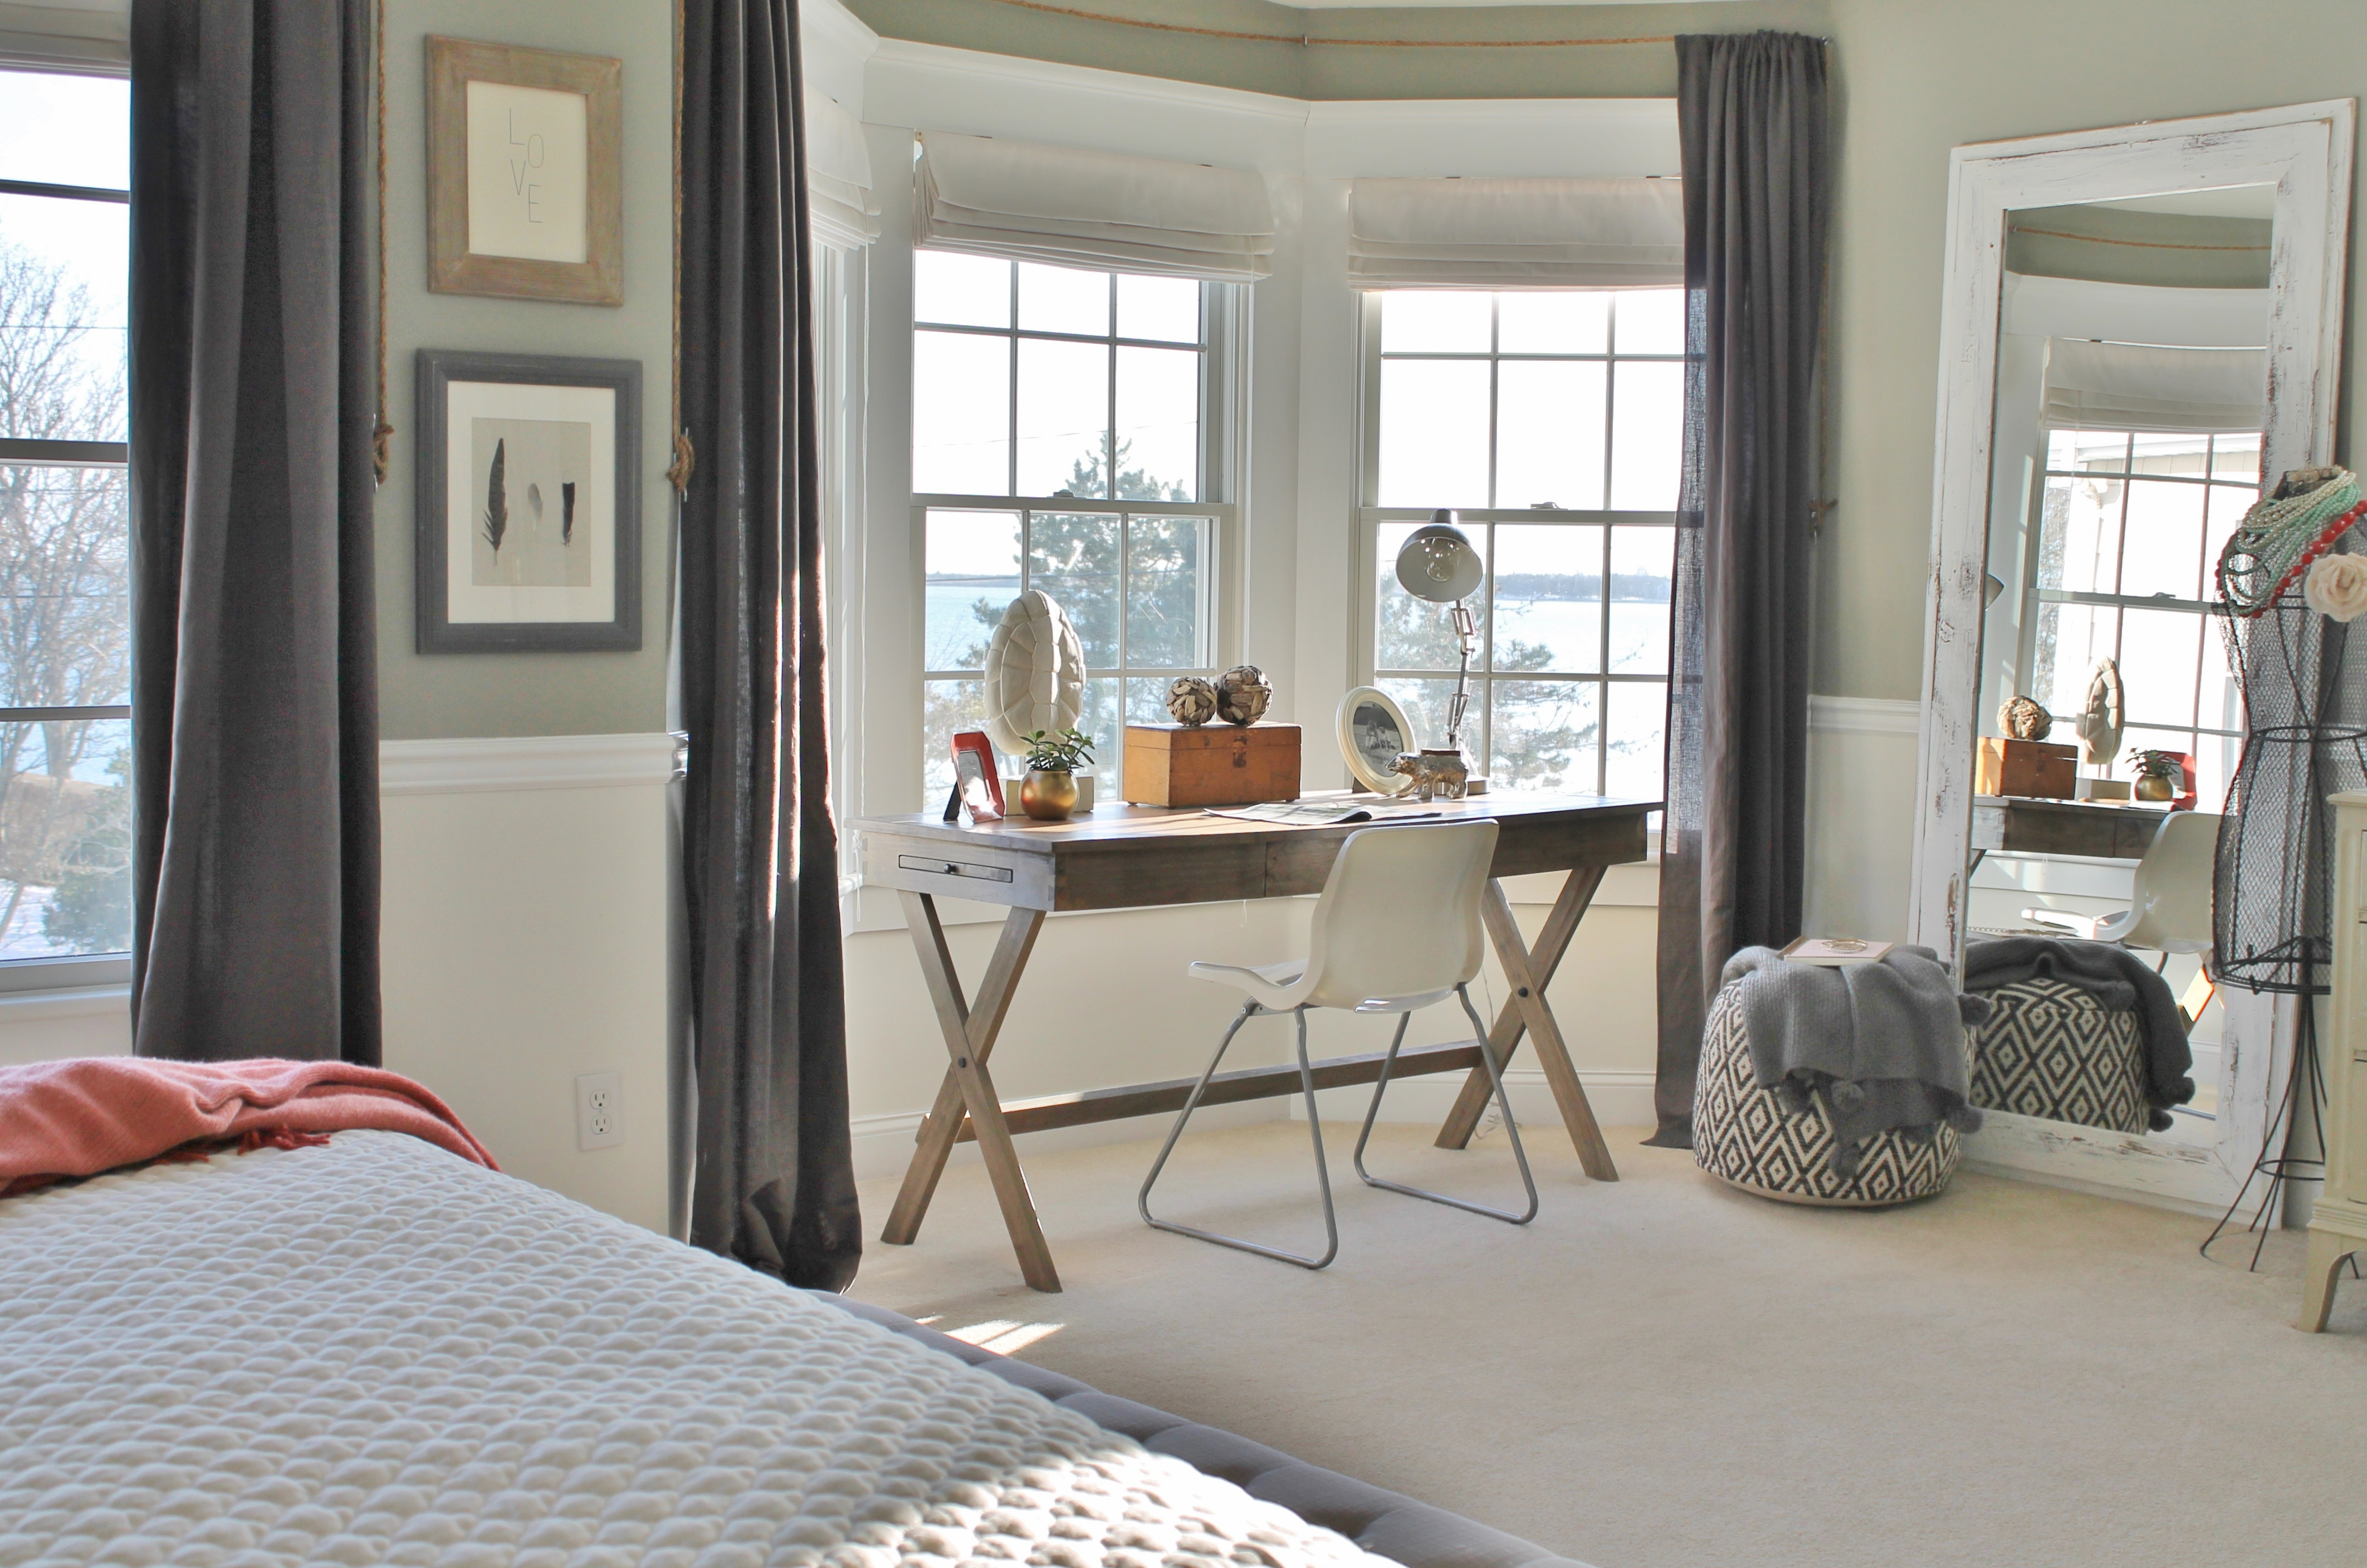 Beau Campaign Desk Cost Plus  Rustic Chic Master Bedroom